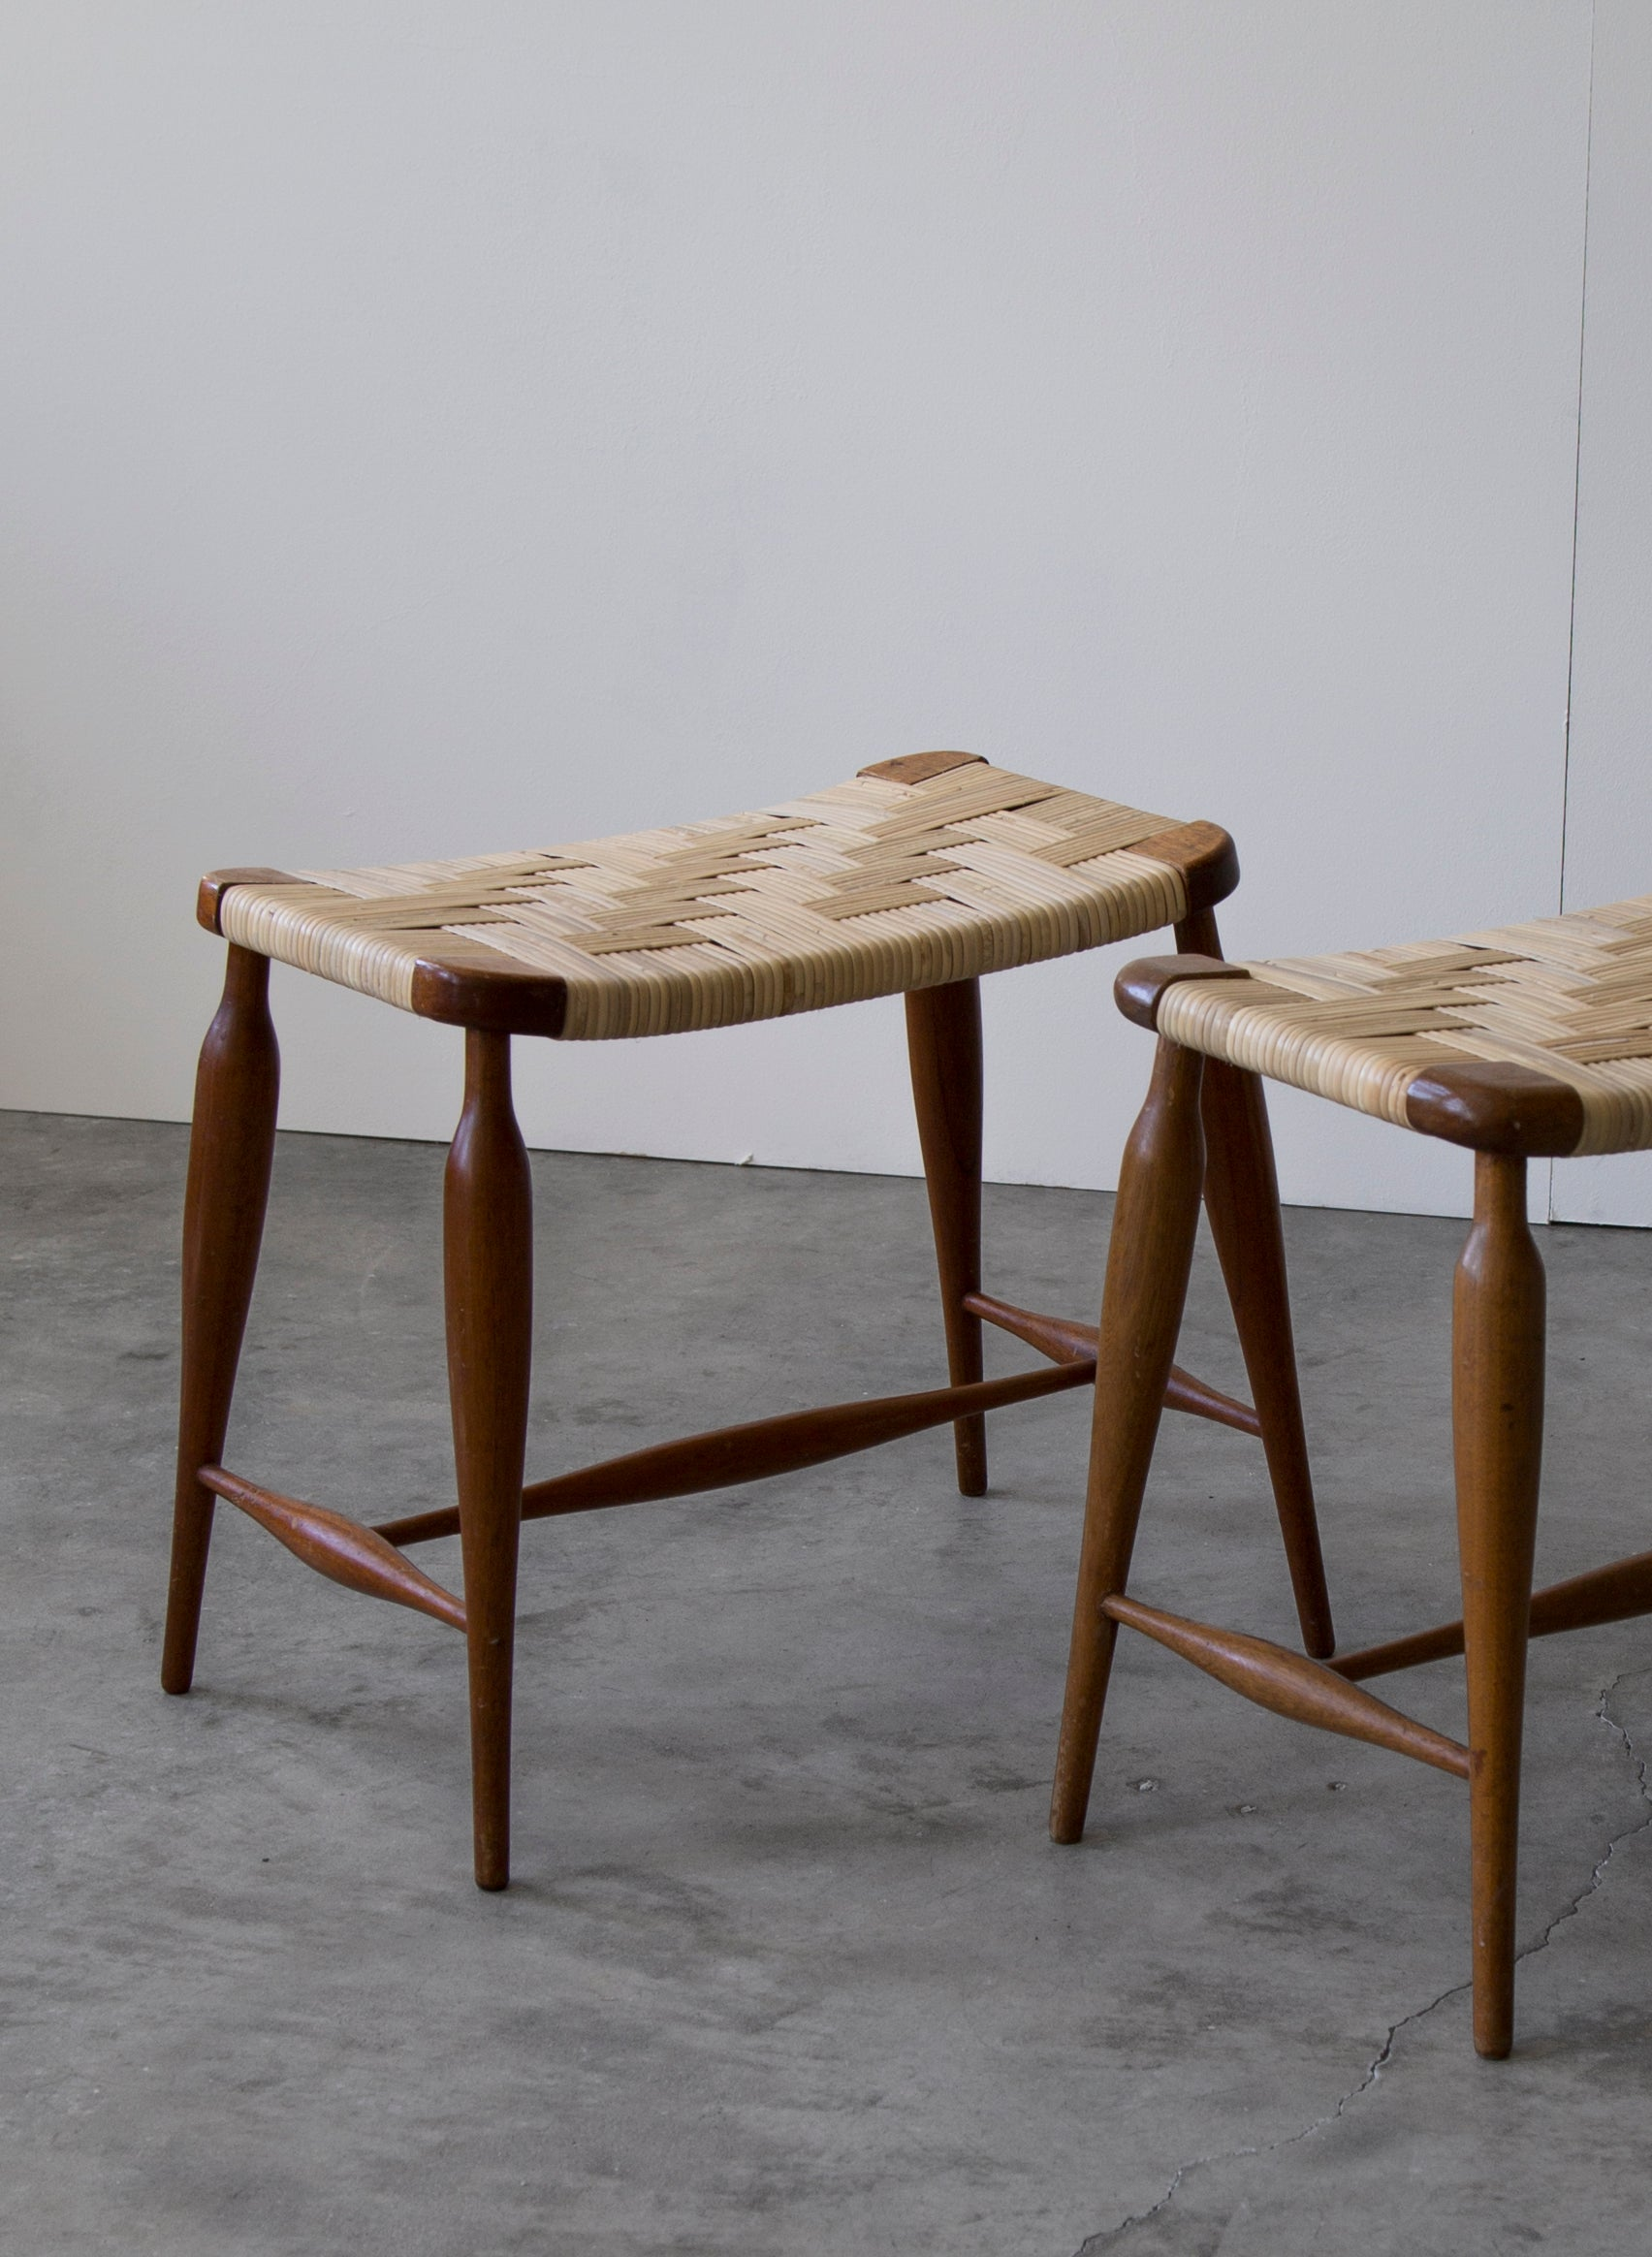 Josef Frank Pair of Stools, 1940s - The Exchange Int